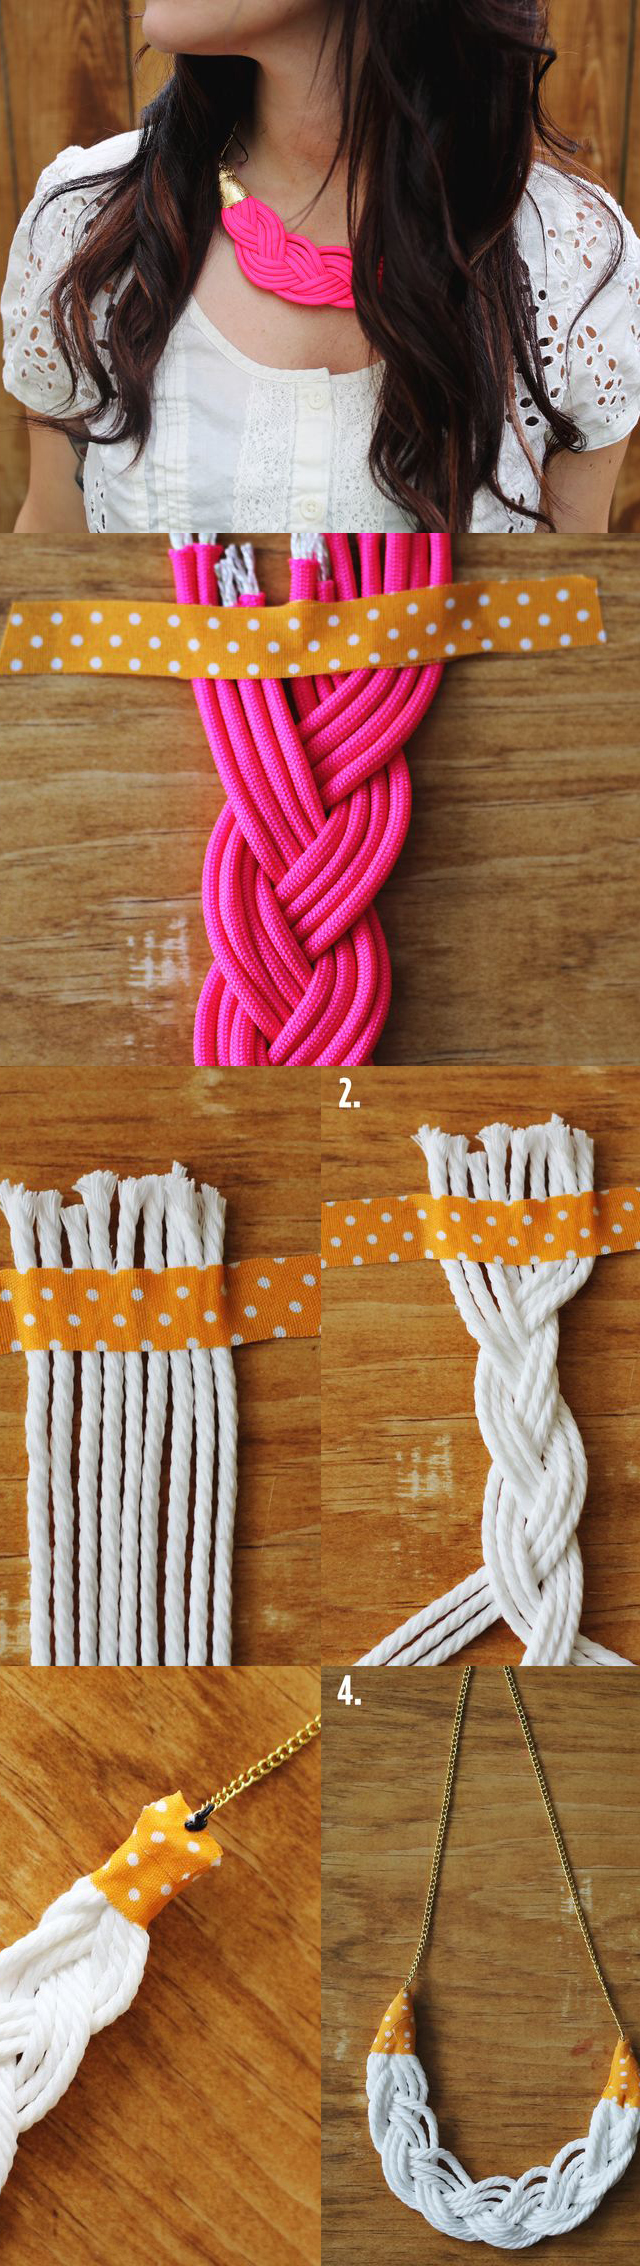 Braided Rope Necklace Tutorial